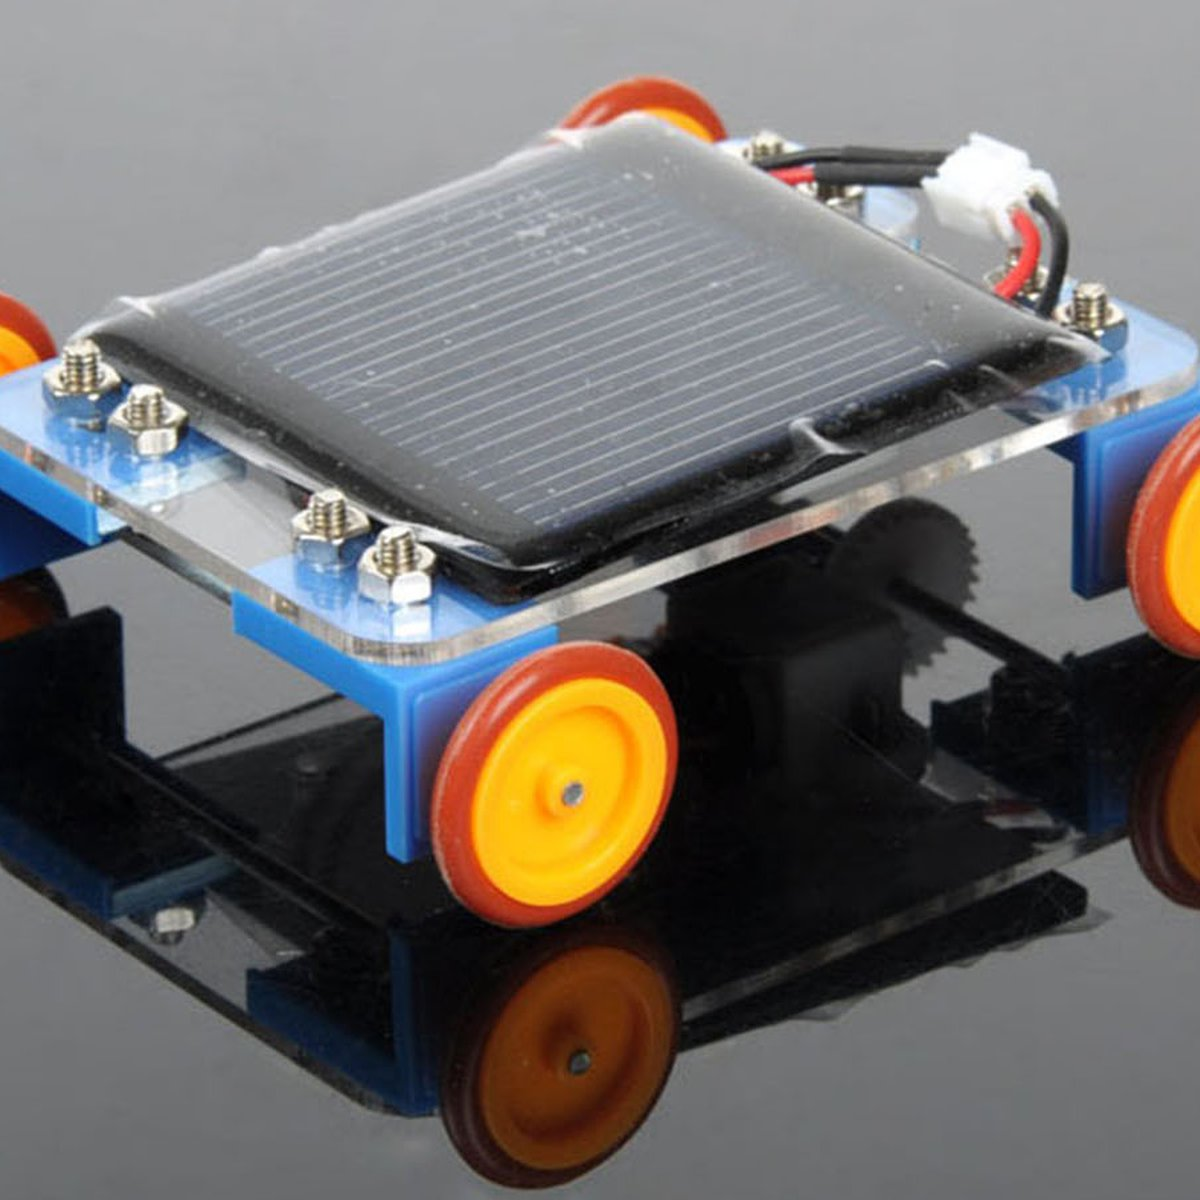 Solar Powered Toy Car Kit 13058 From Icstation On Tindie